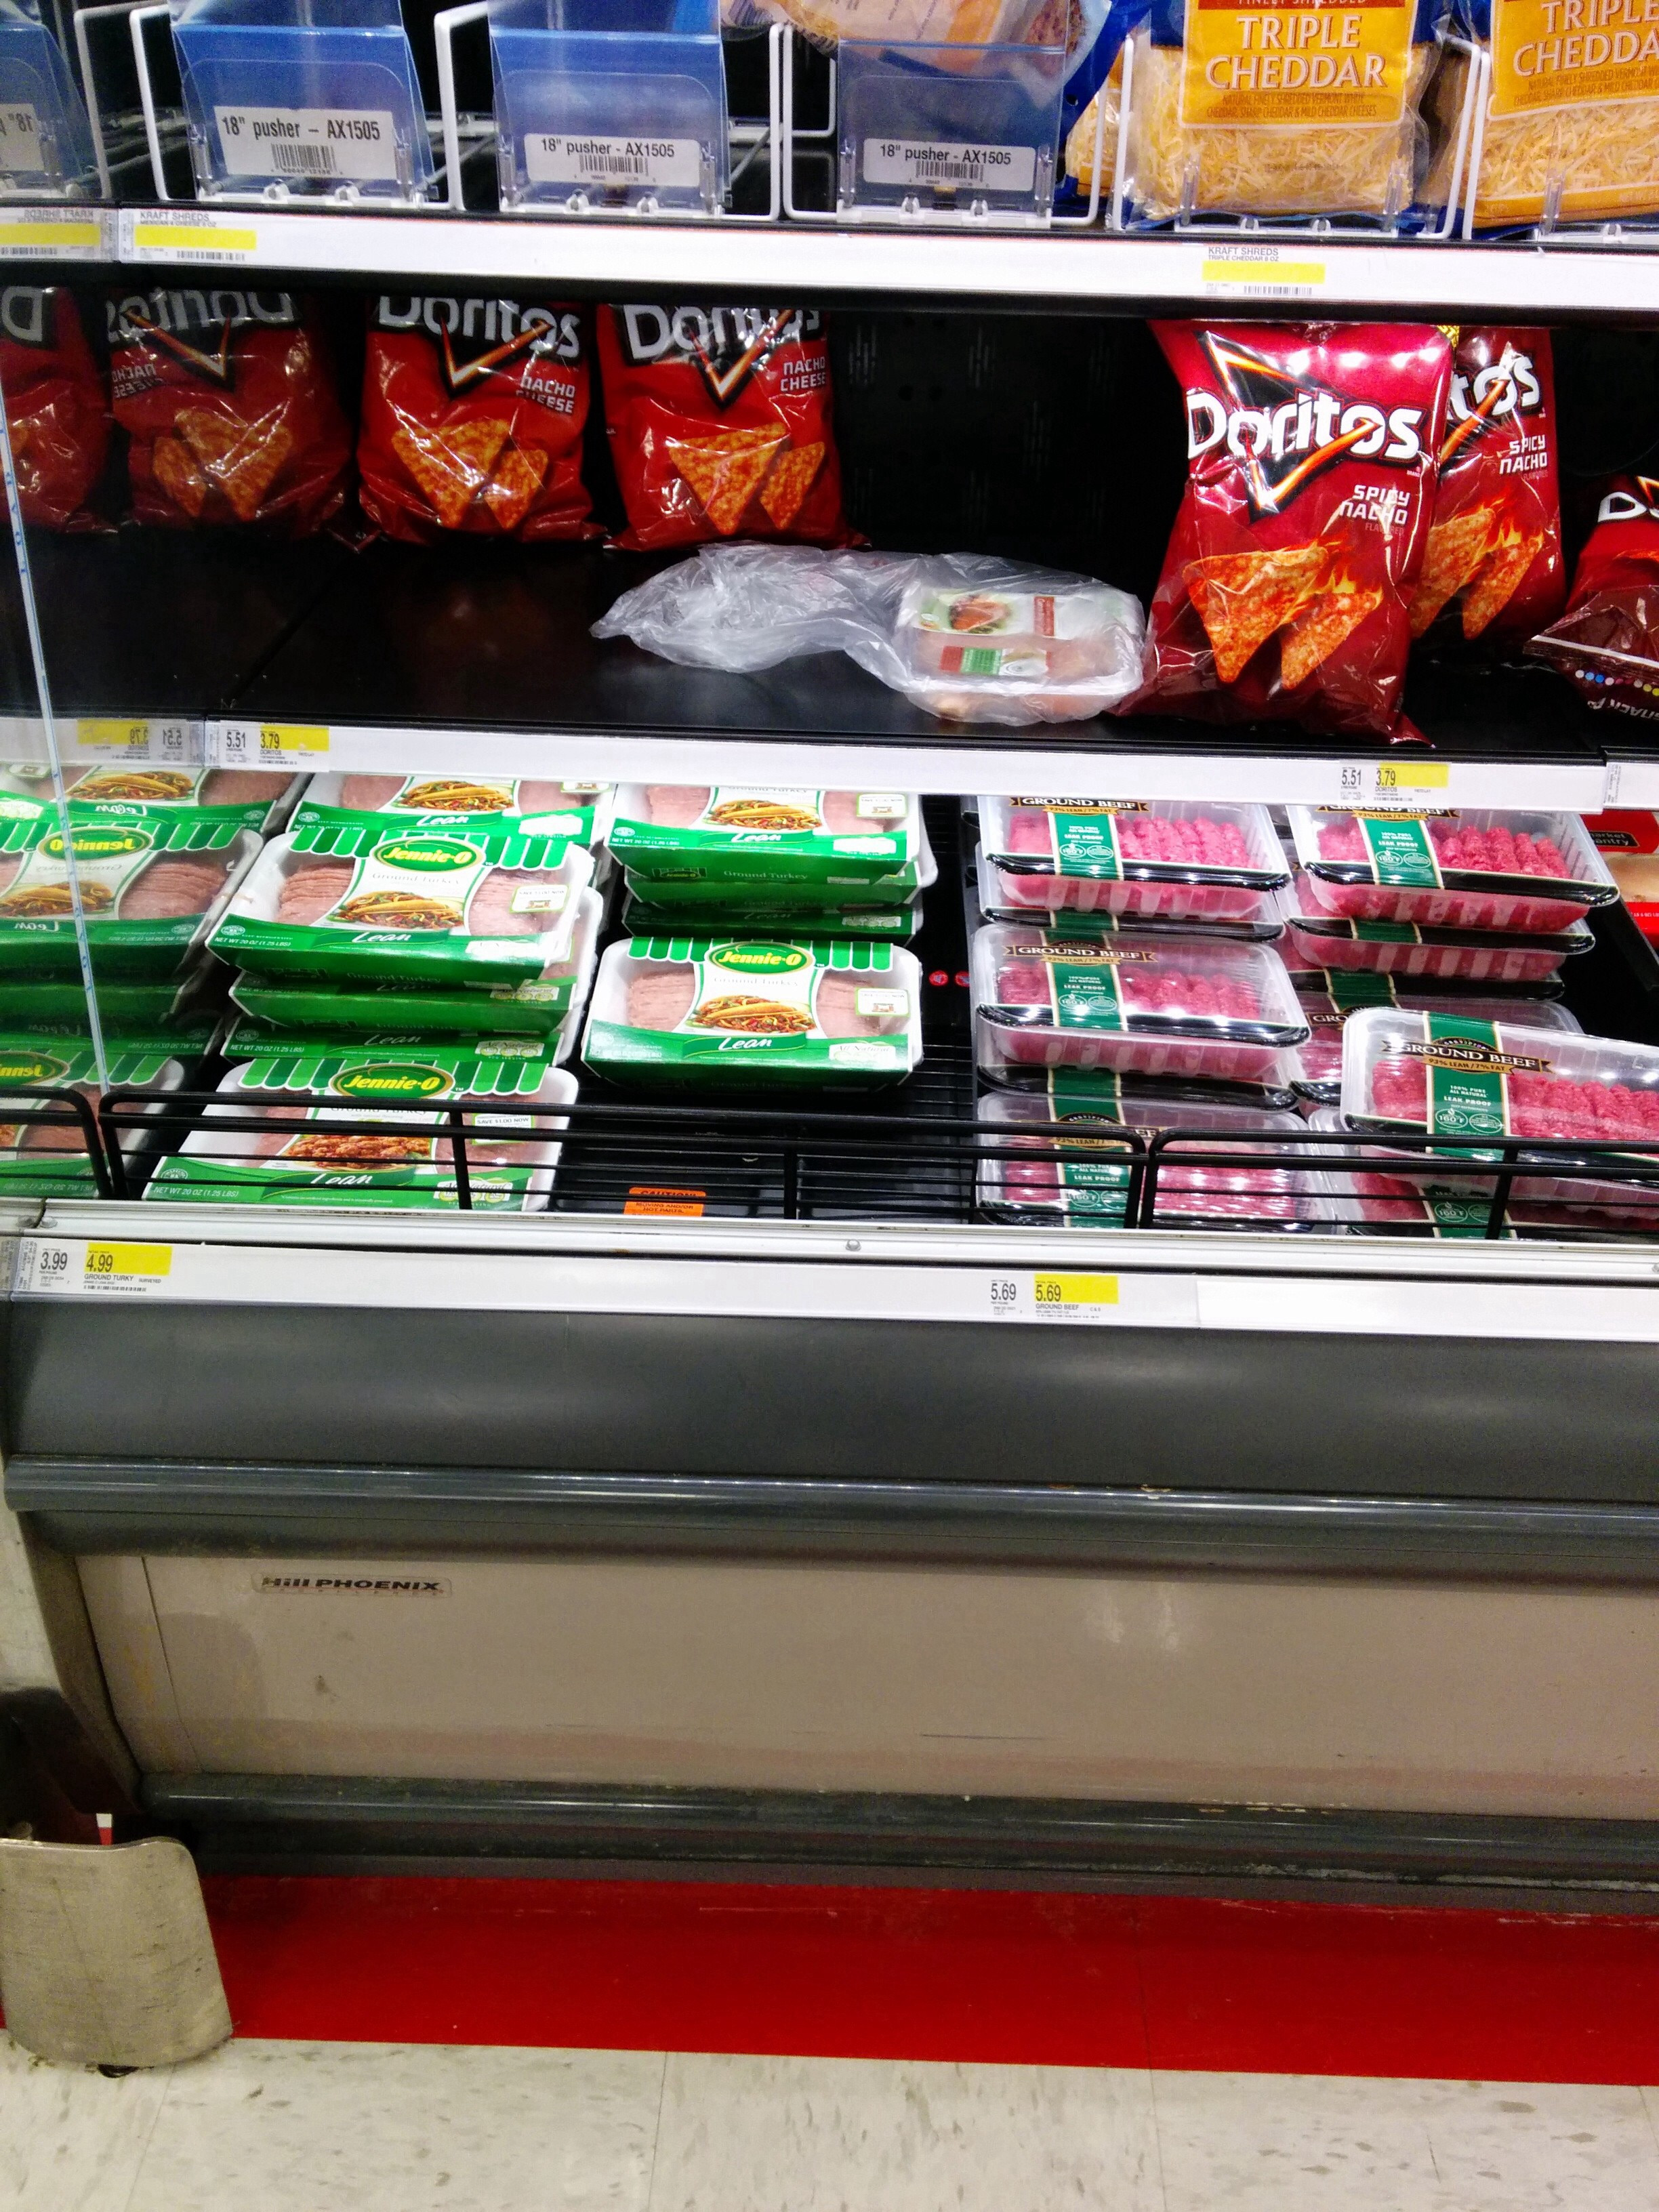 Target Is Refrigerating Their Doritos For Some Reason